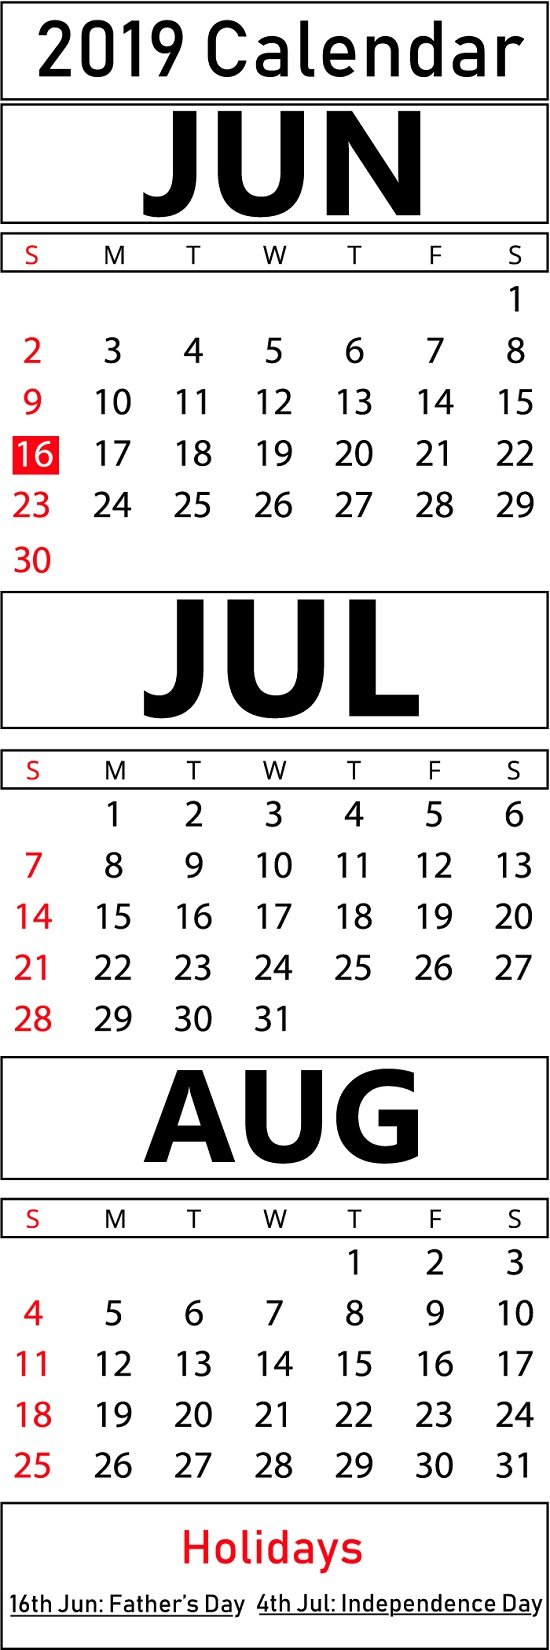 Printable June & July & August 2019 Calendar Templates | Printable June 7 2019 Calendar